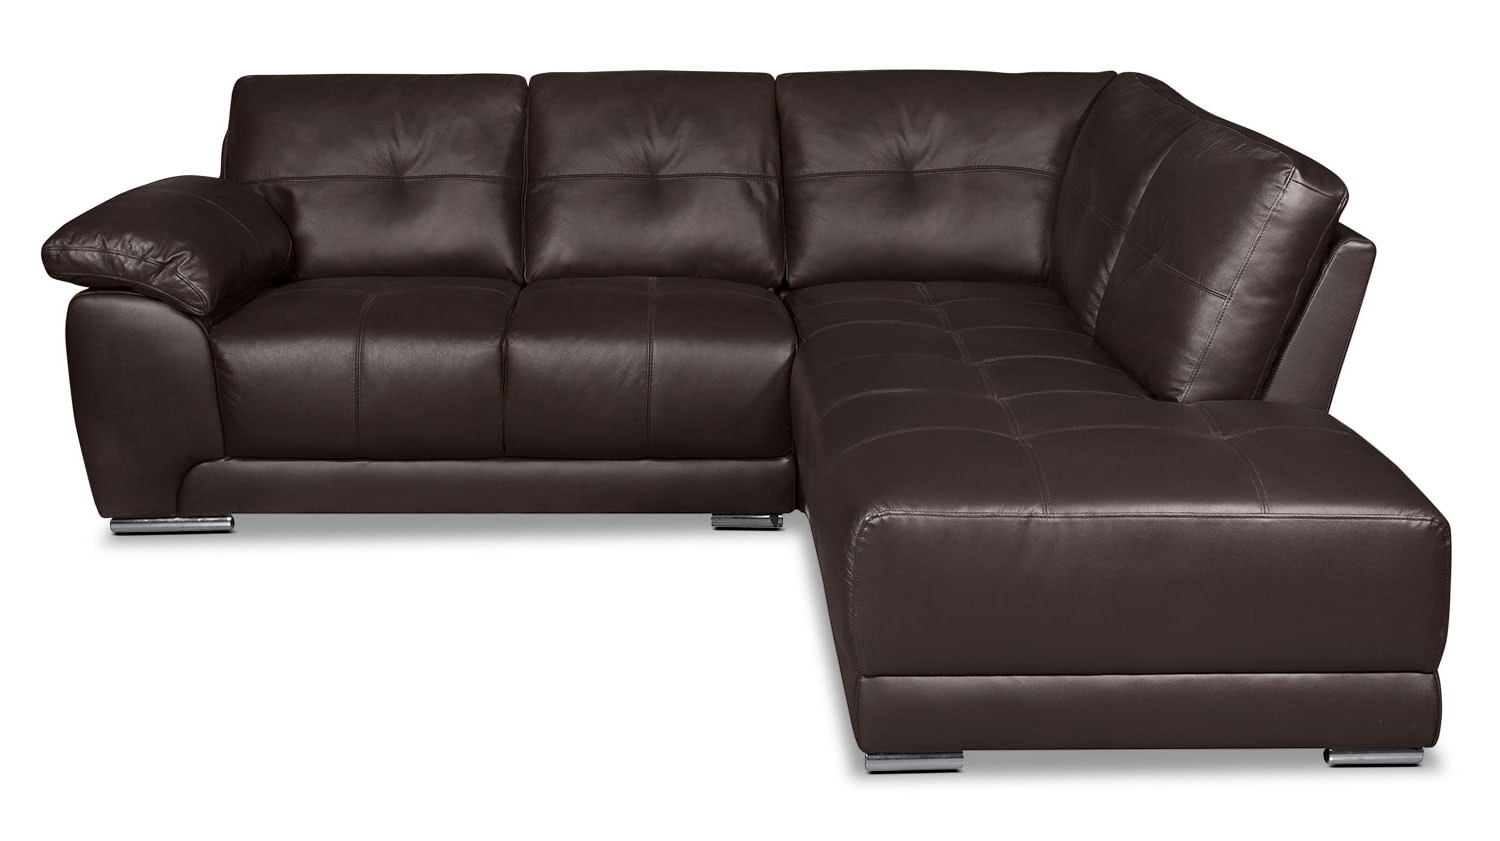 Rylee 2-Piece Genuine Leather Right-Facing Sectional - Brown